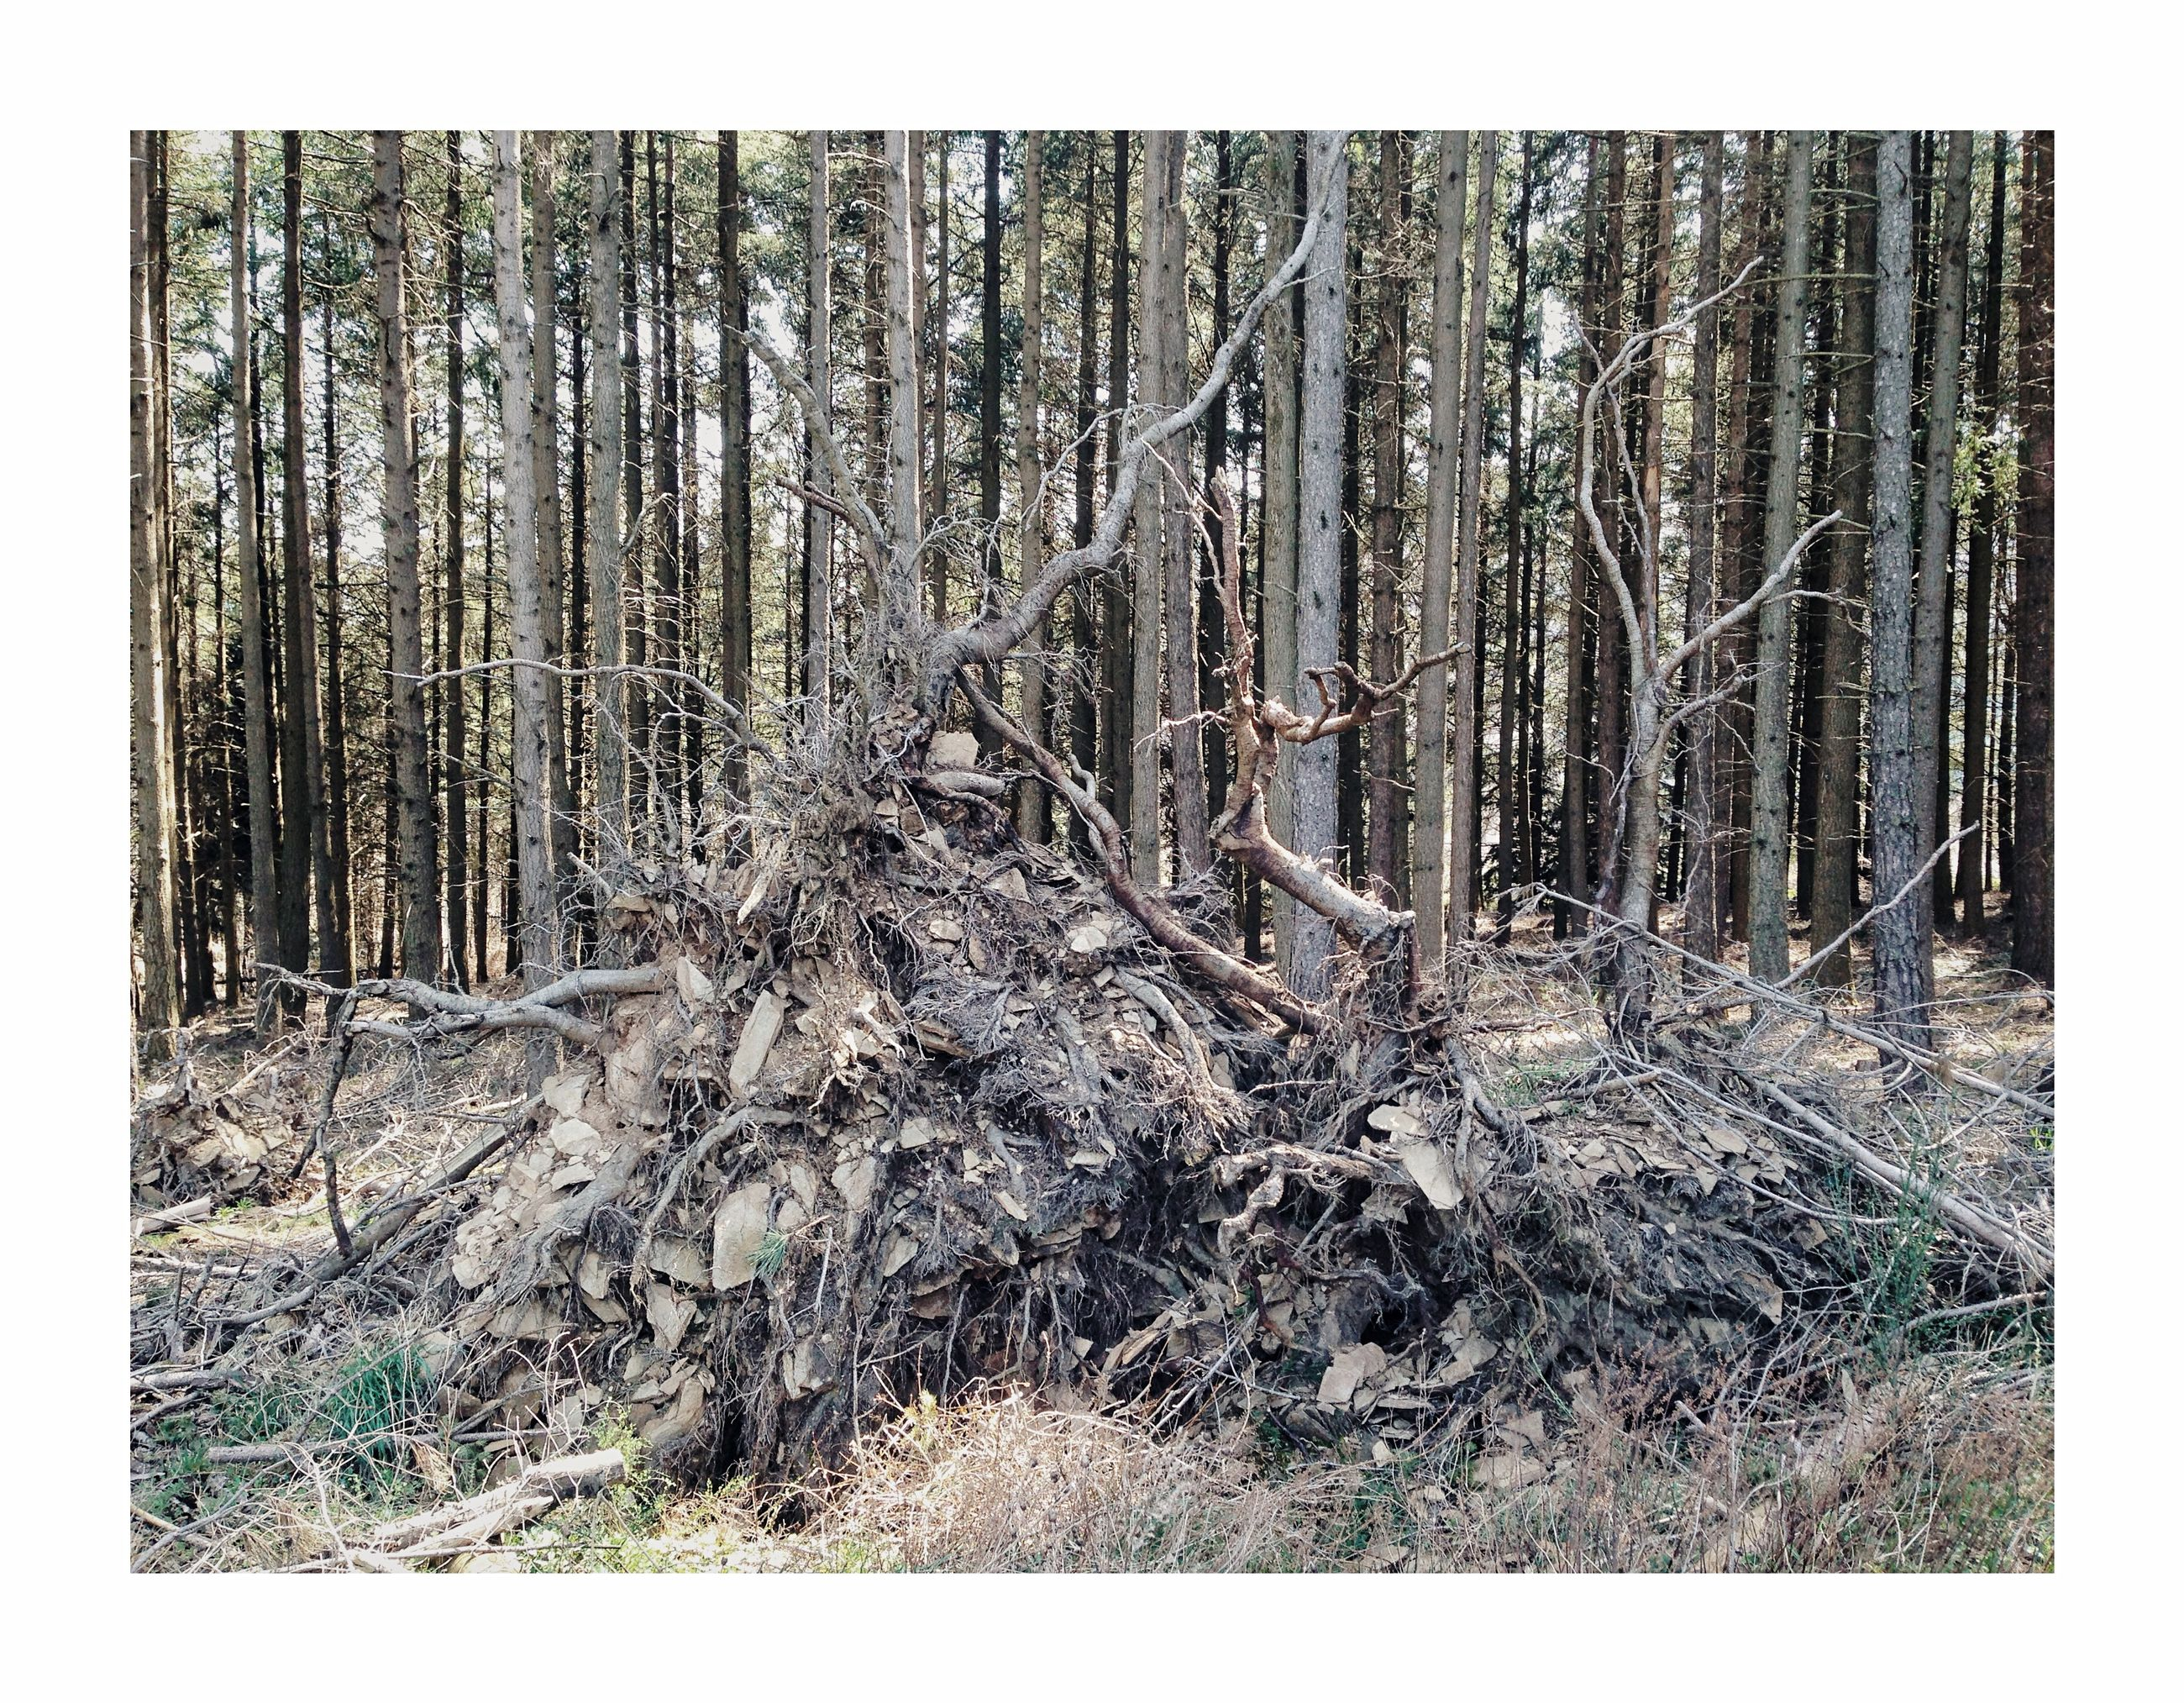 tree, forest, land, plant, tree trunk, trunk, nature, woodland, no people, auto post production filter, transfer print, day, tranquility, growth, environment, non-urban scene, outdoors, landscape, scenics - nature, tranquil scene, dead plant